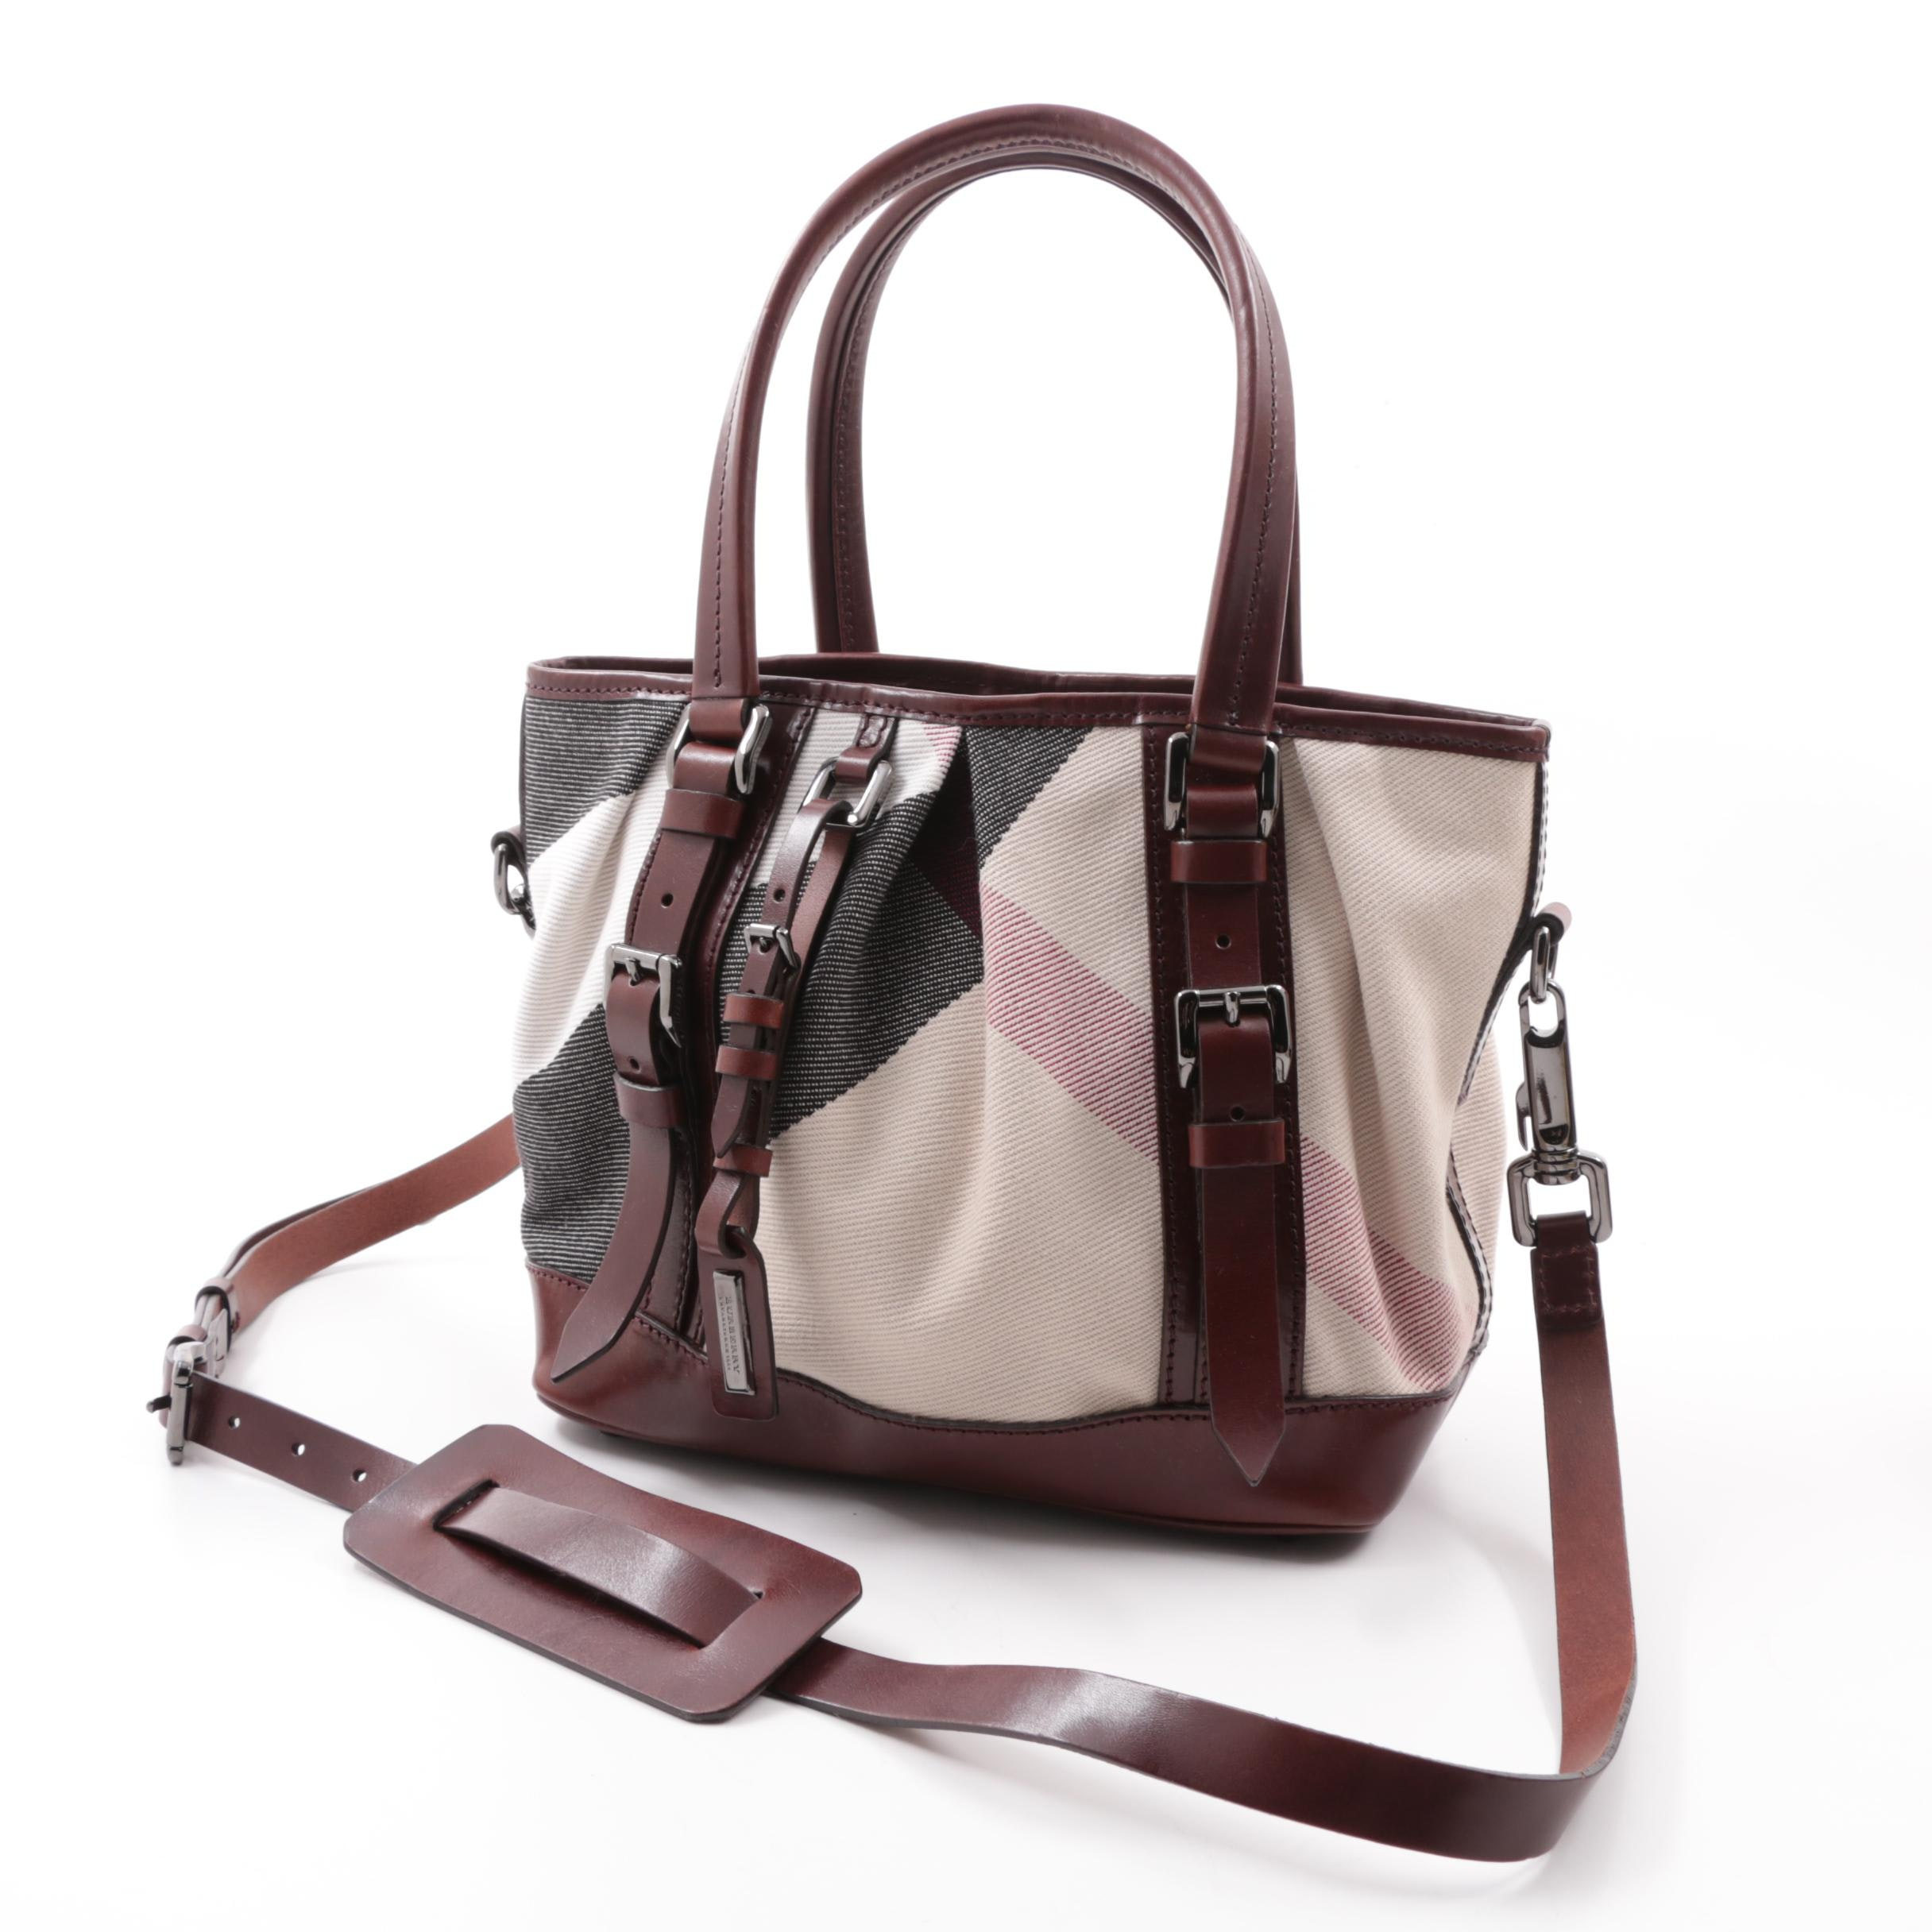 Burberry Check Canvas and Brown Leather Shoulder Bag